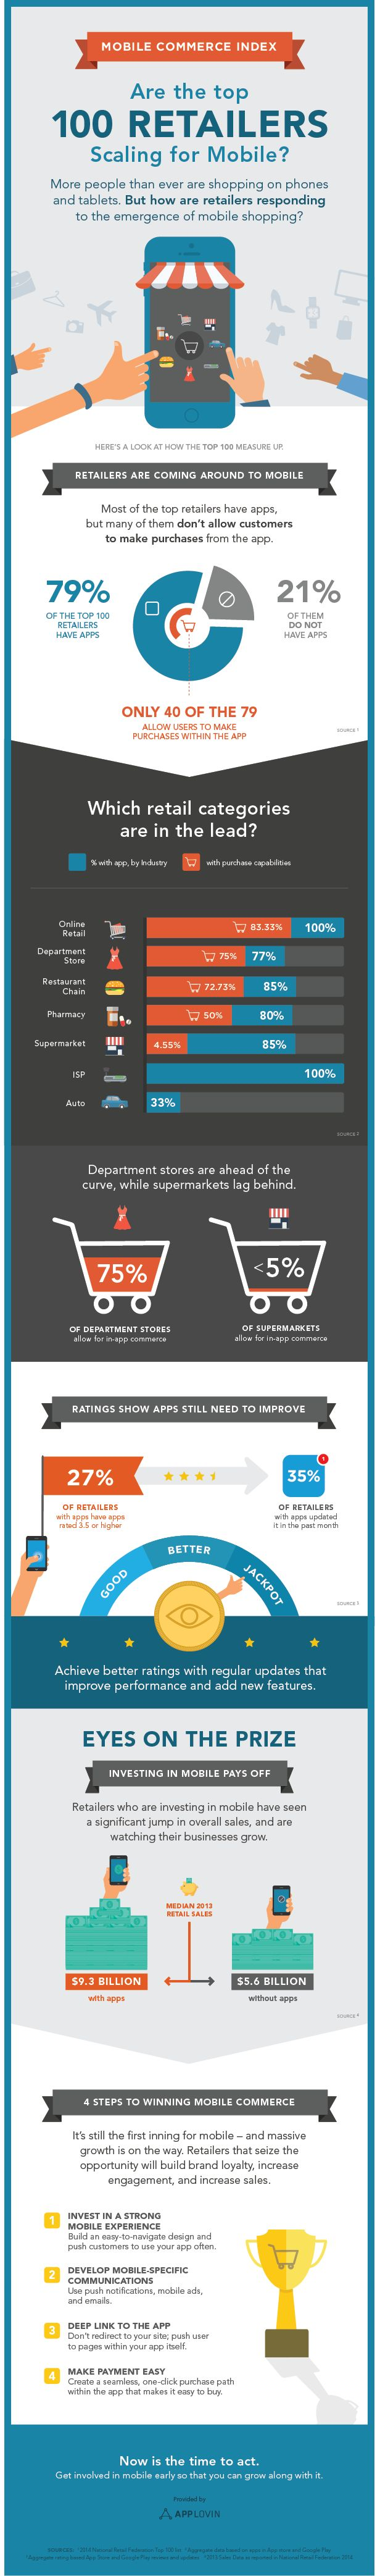 [INFOGRAPHIC] Mobile commerce index 2014